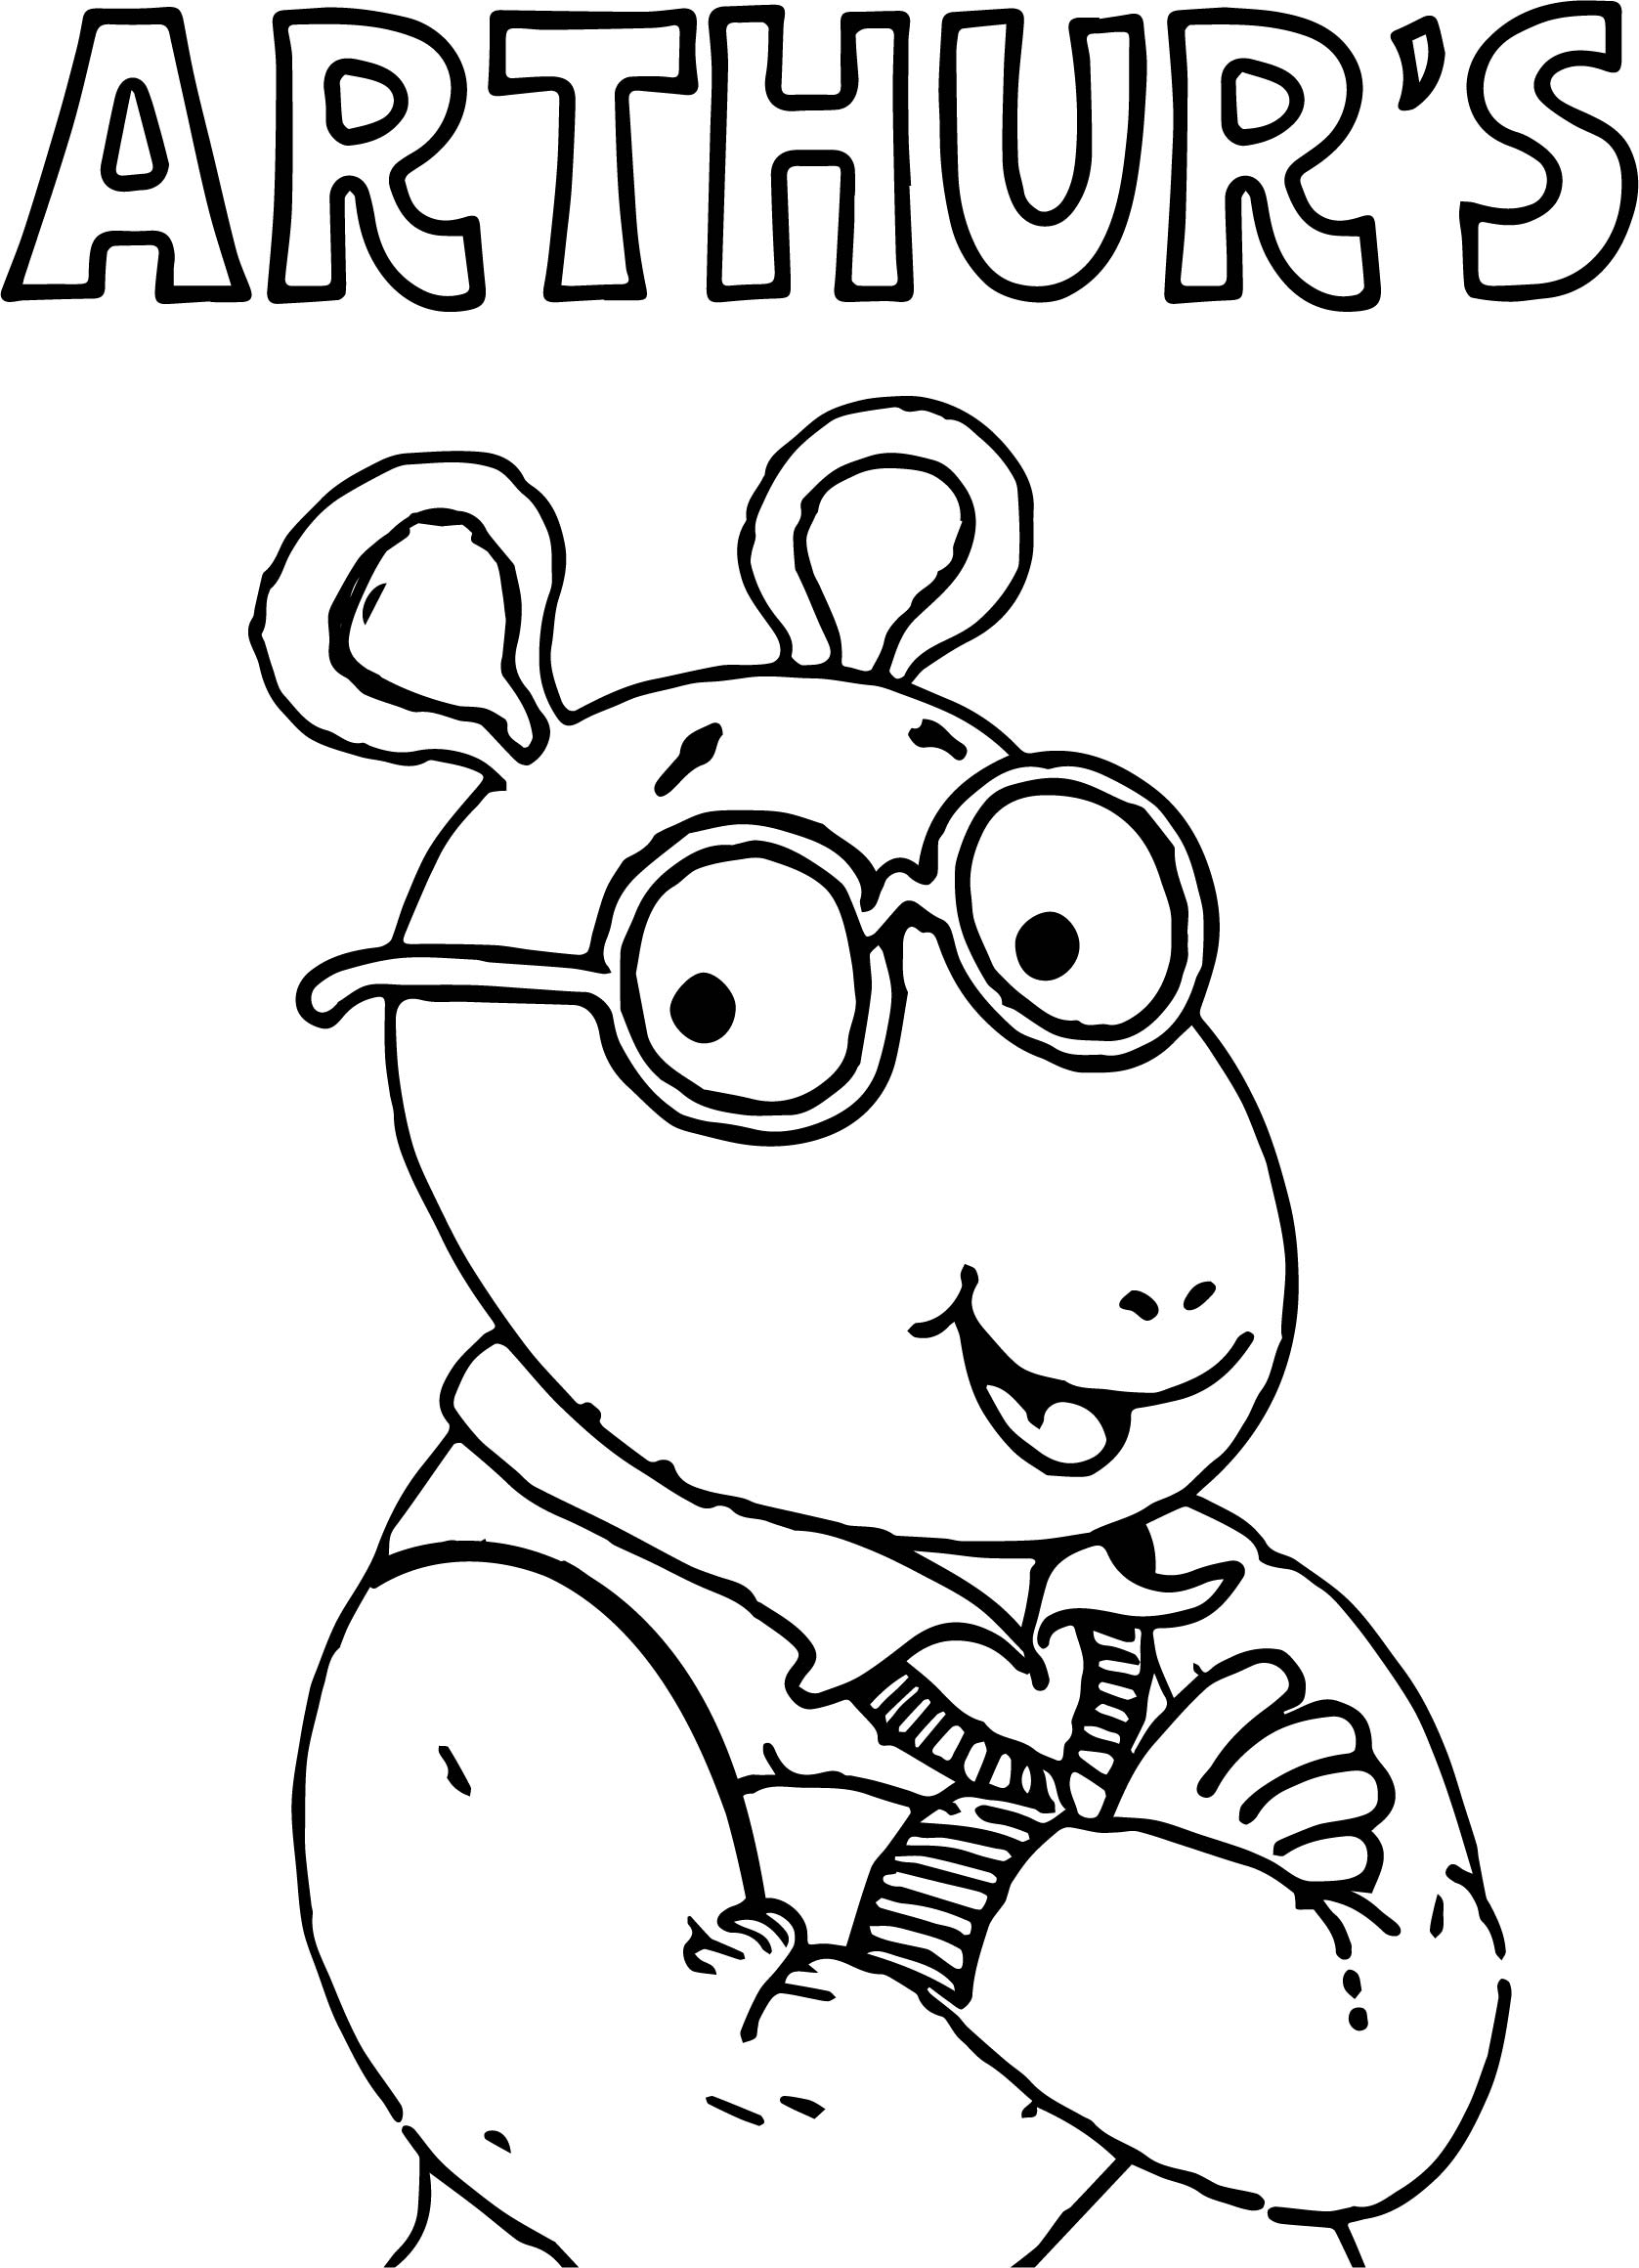 Arthur Text And Arthur Coloring Page